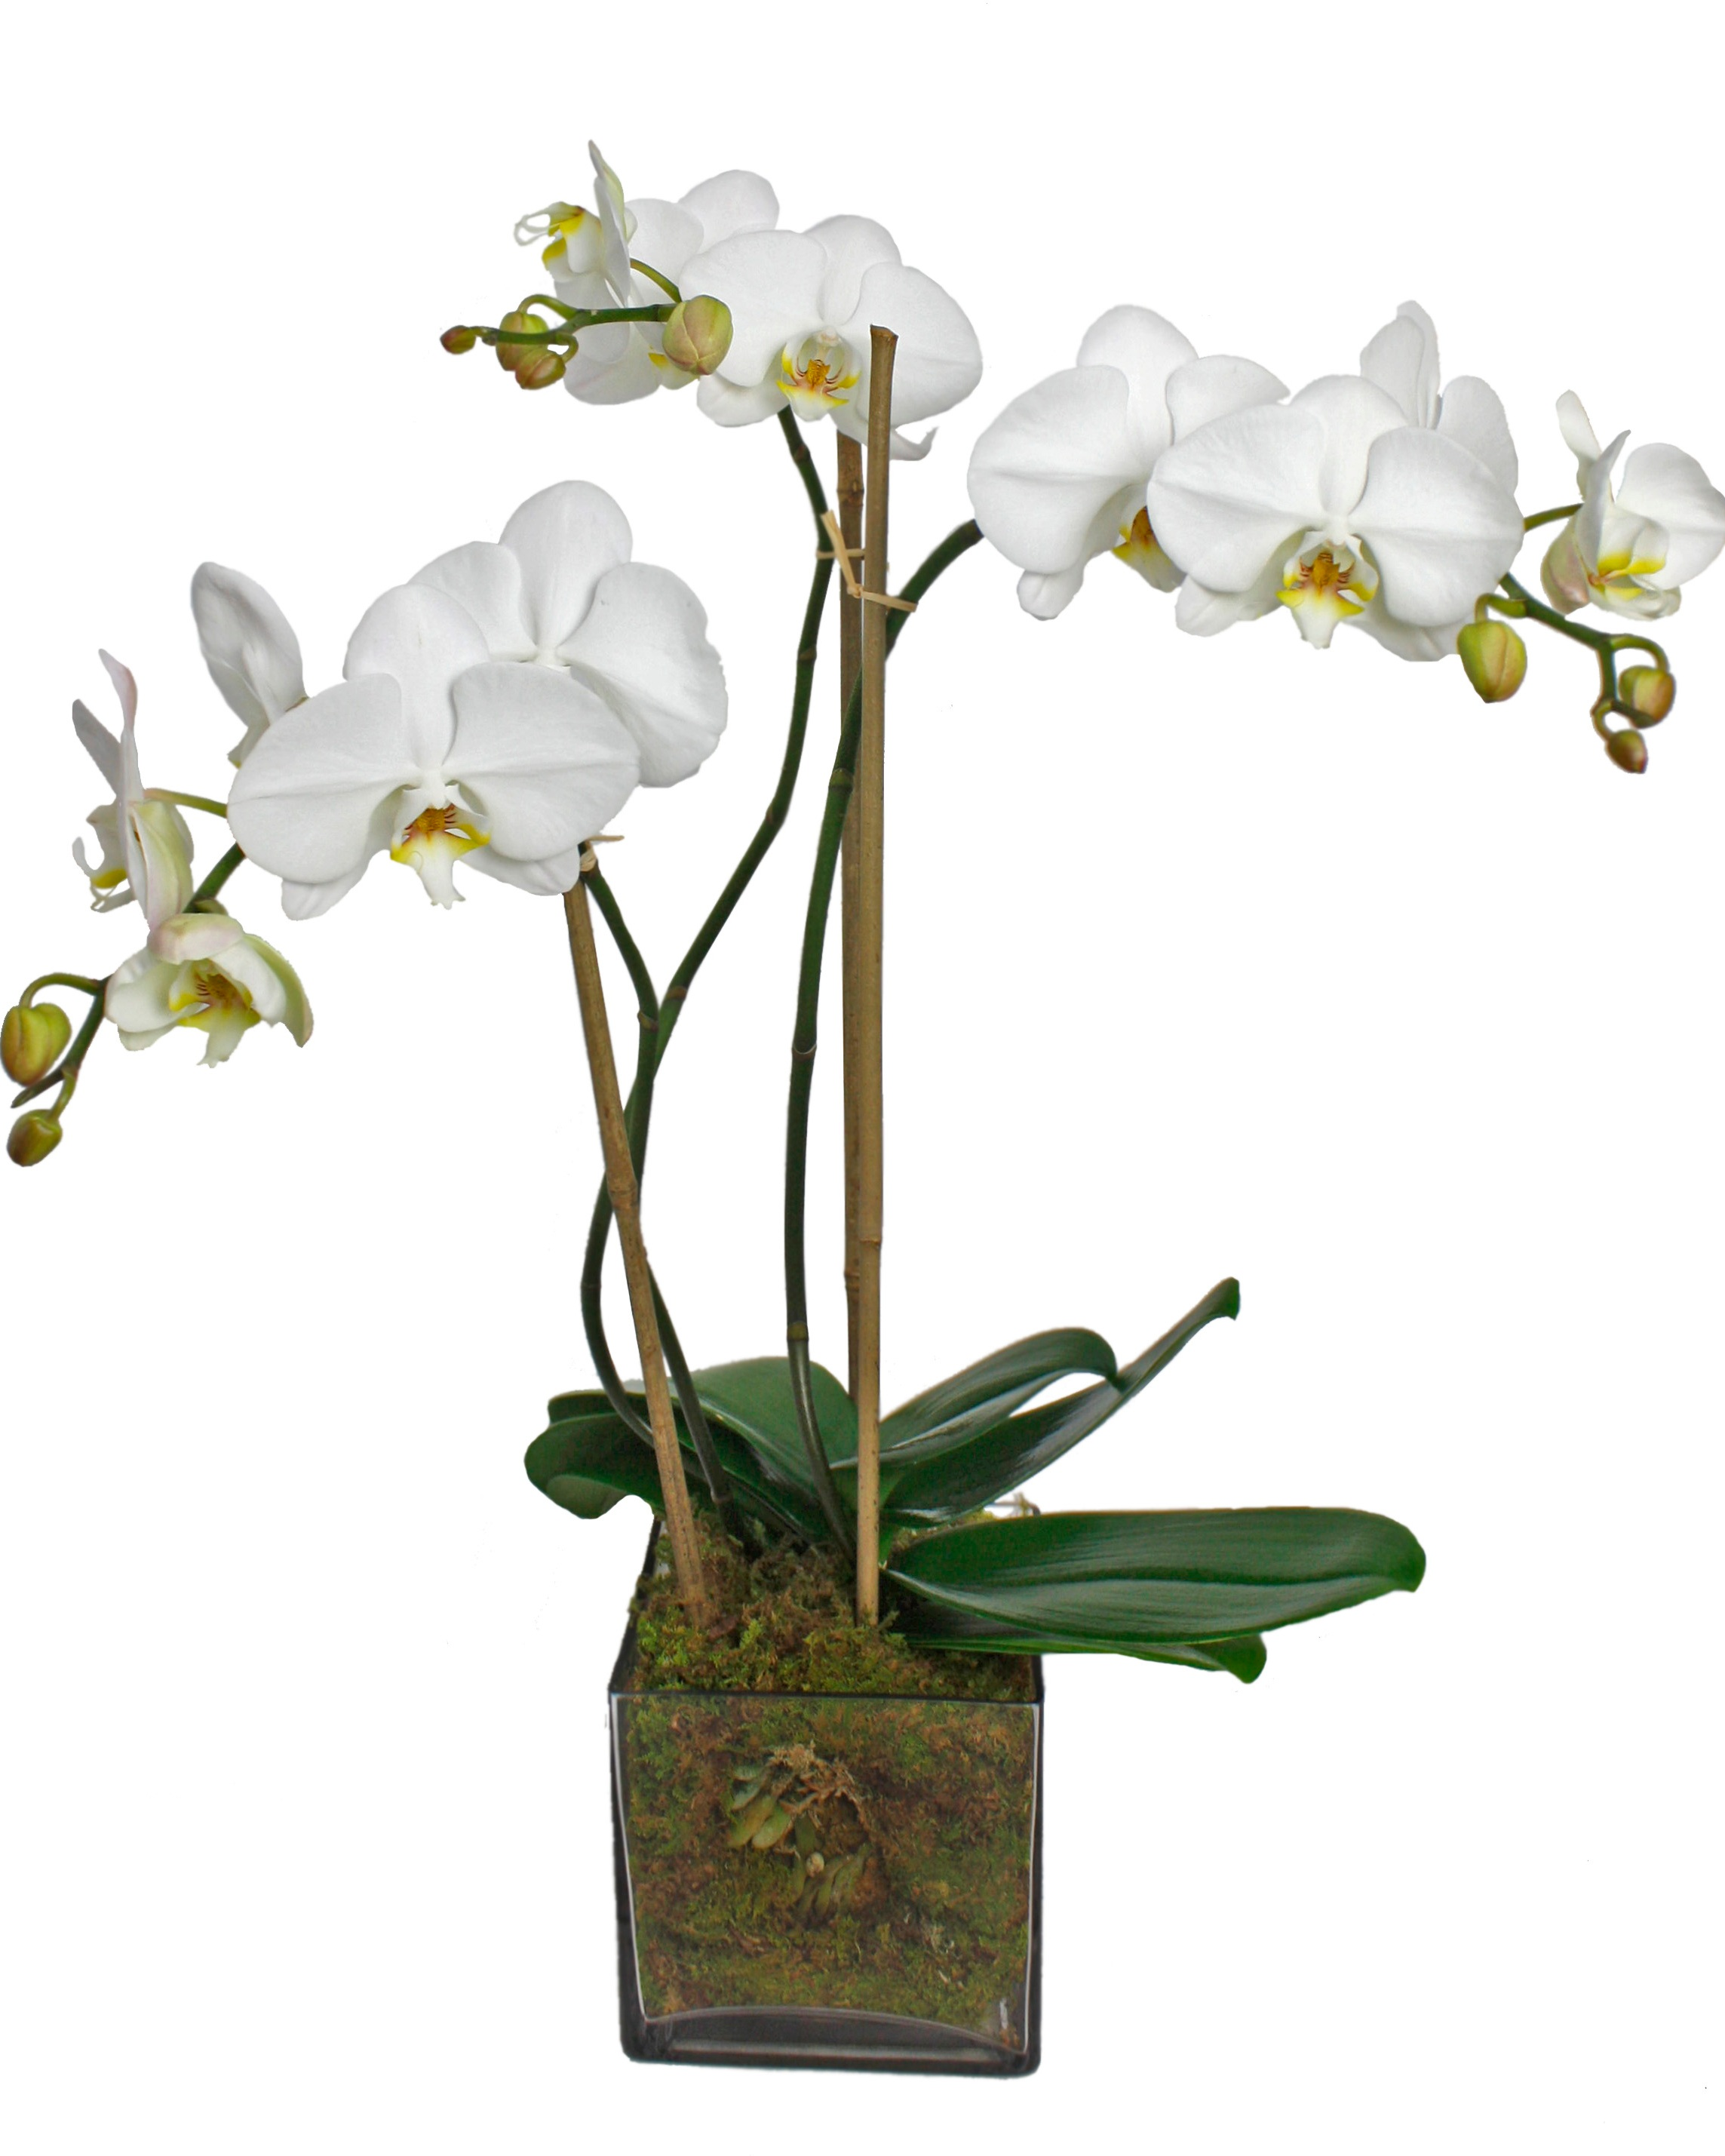 Exquisite Orchid $100-$250 -